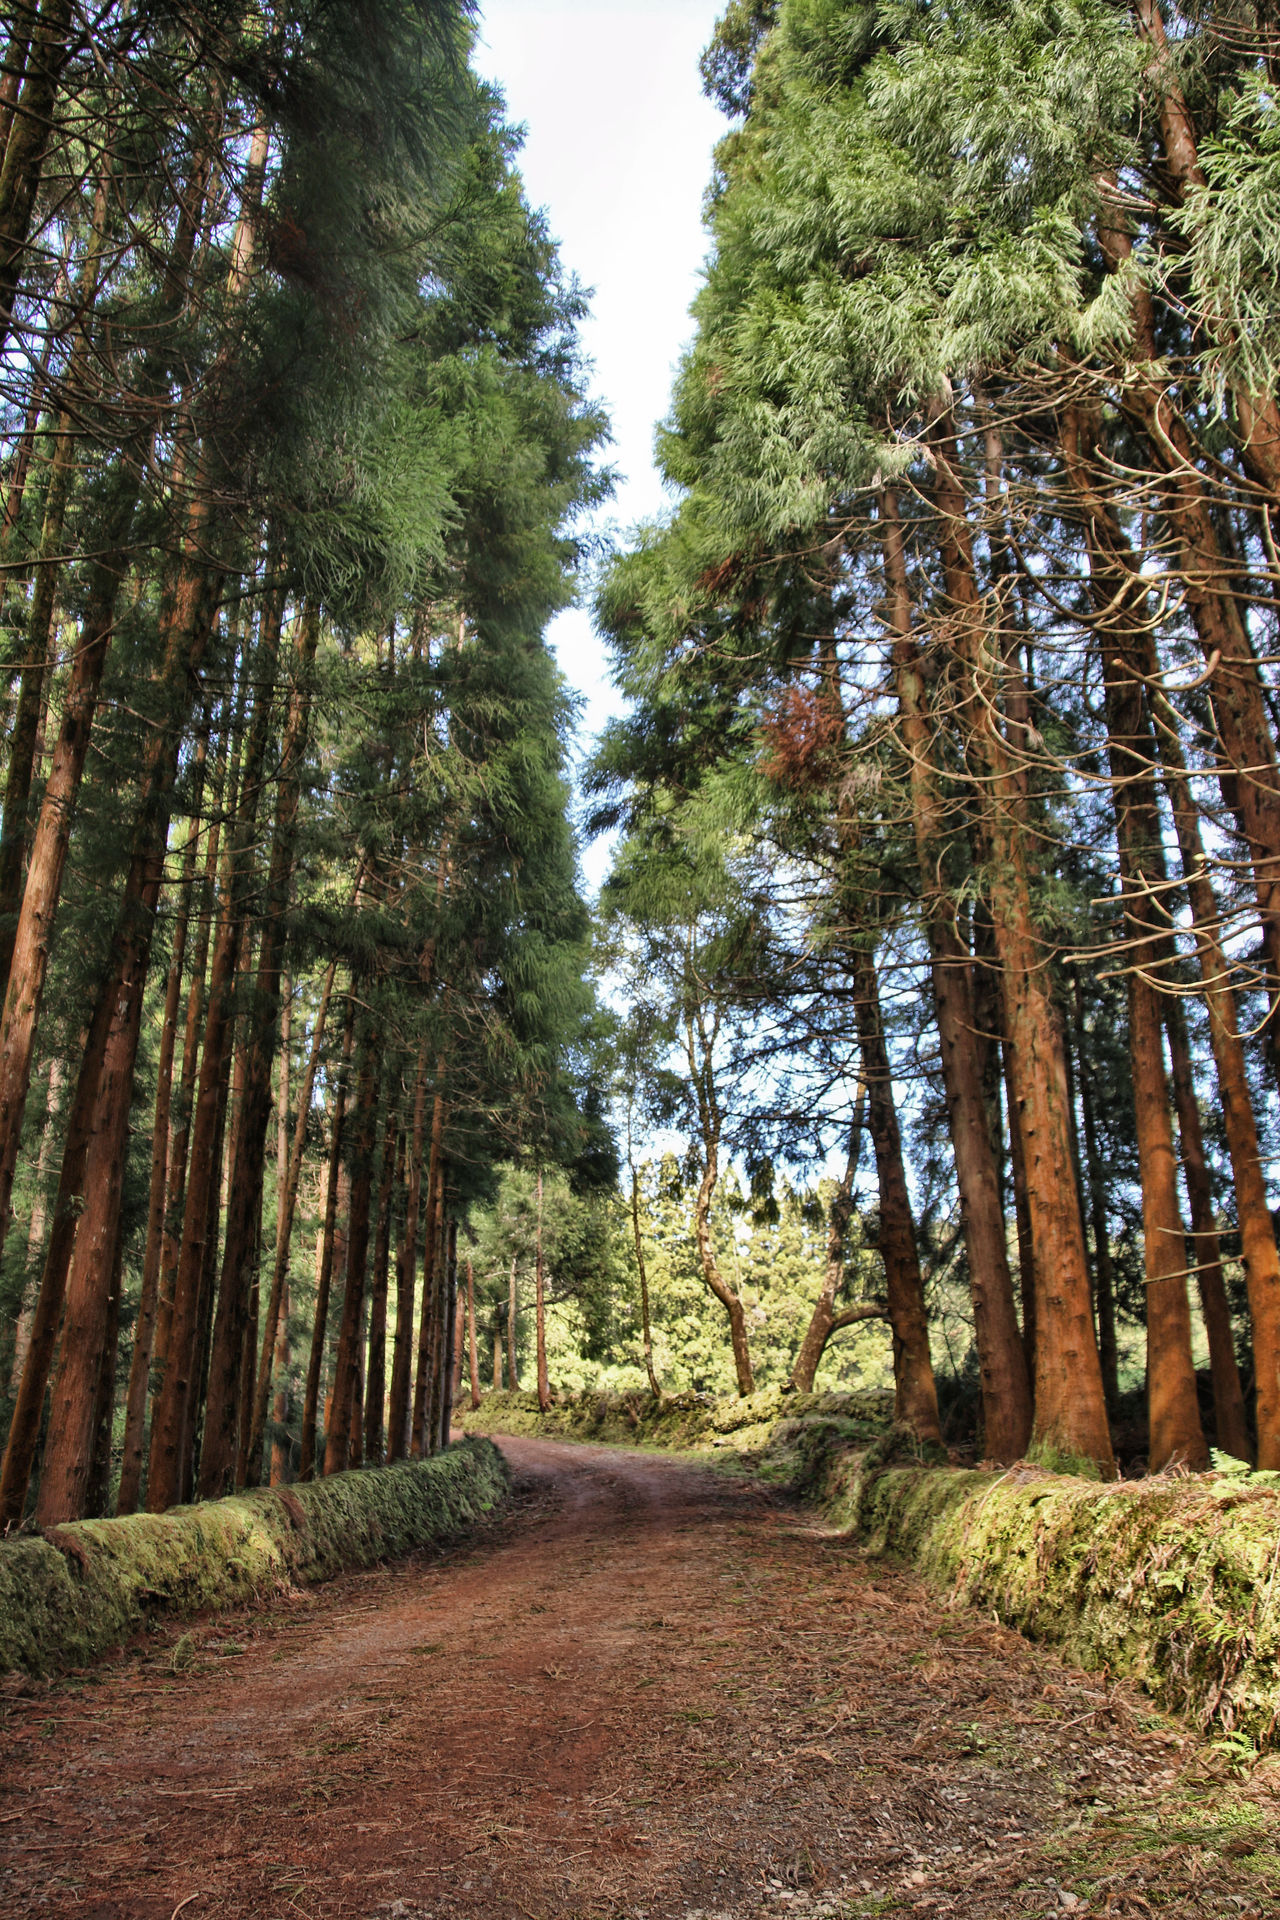 Terceira Island, Azores - Portugal Atlantida Azores Azores, Terceira Beauty In Nature Day Forest Green Color Growth Landscape Nature No People Ocean Outdoors Paradise Portugal Scenics Sky Terceira Island The Way Forward Tranquil Scene Tranquility Tree Tree Trunk